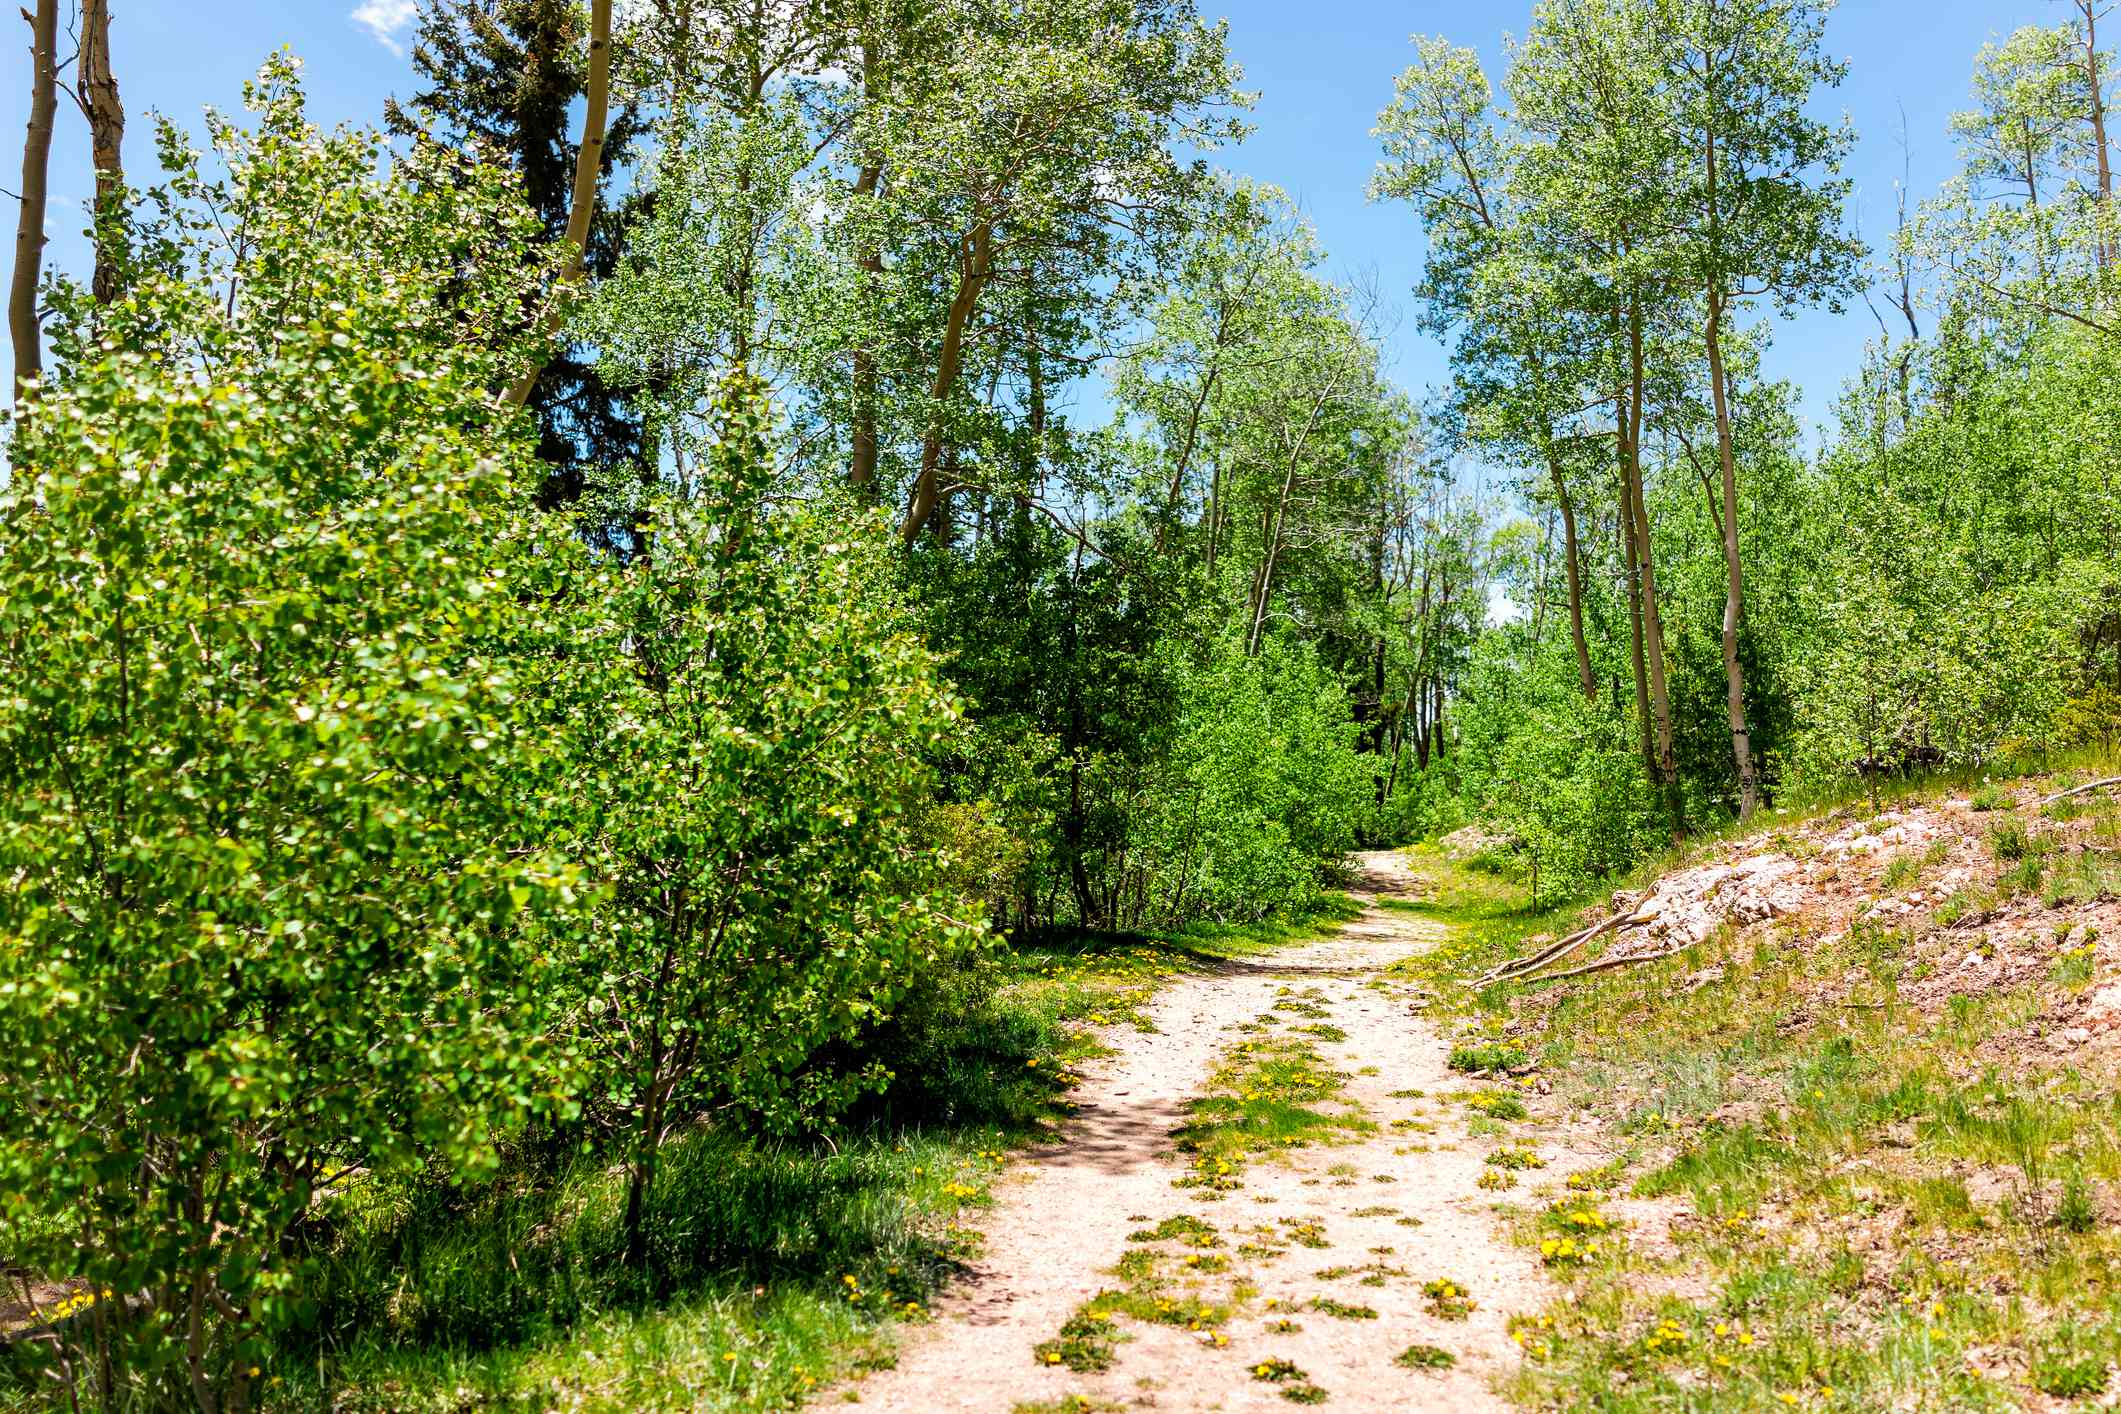 Santa Fe National Forest Sangre de Cristo mountains with trail and green aspen trees in spring or summer on peak